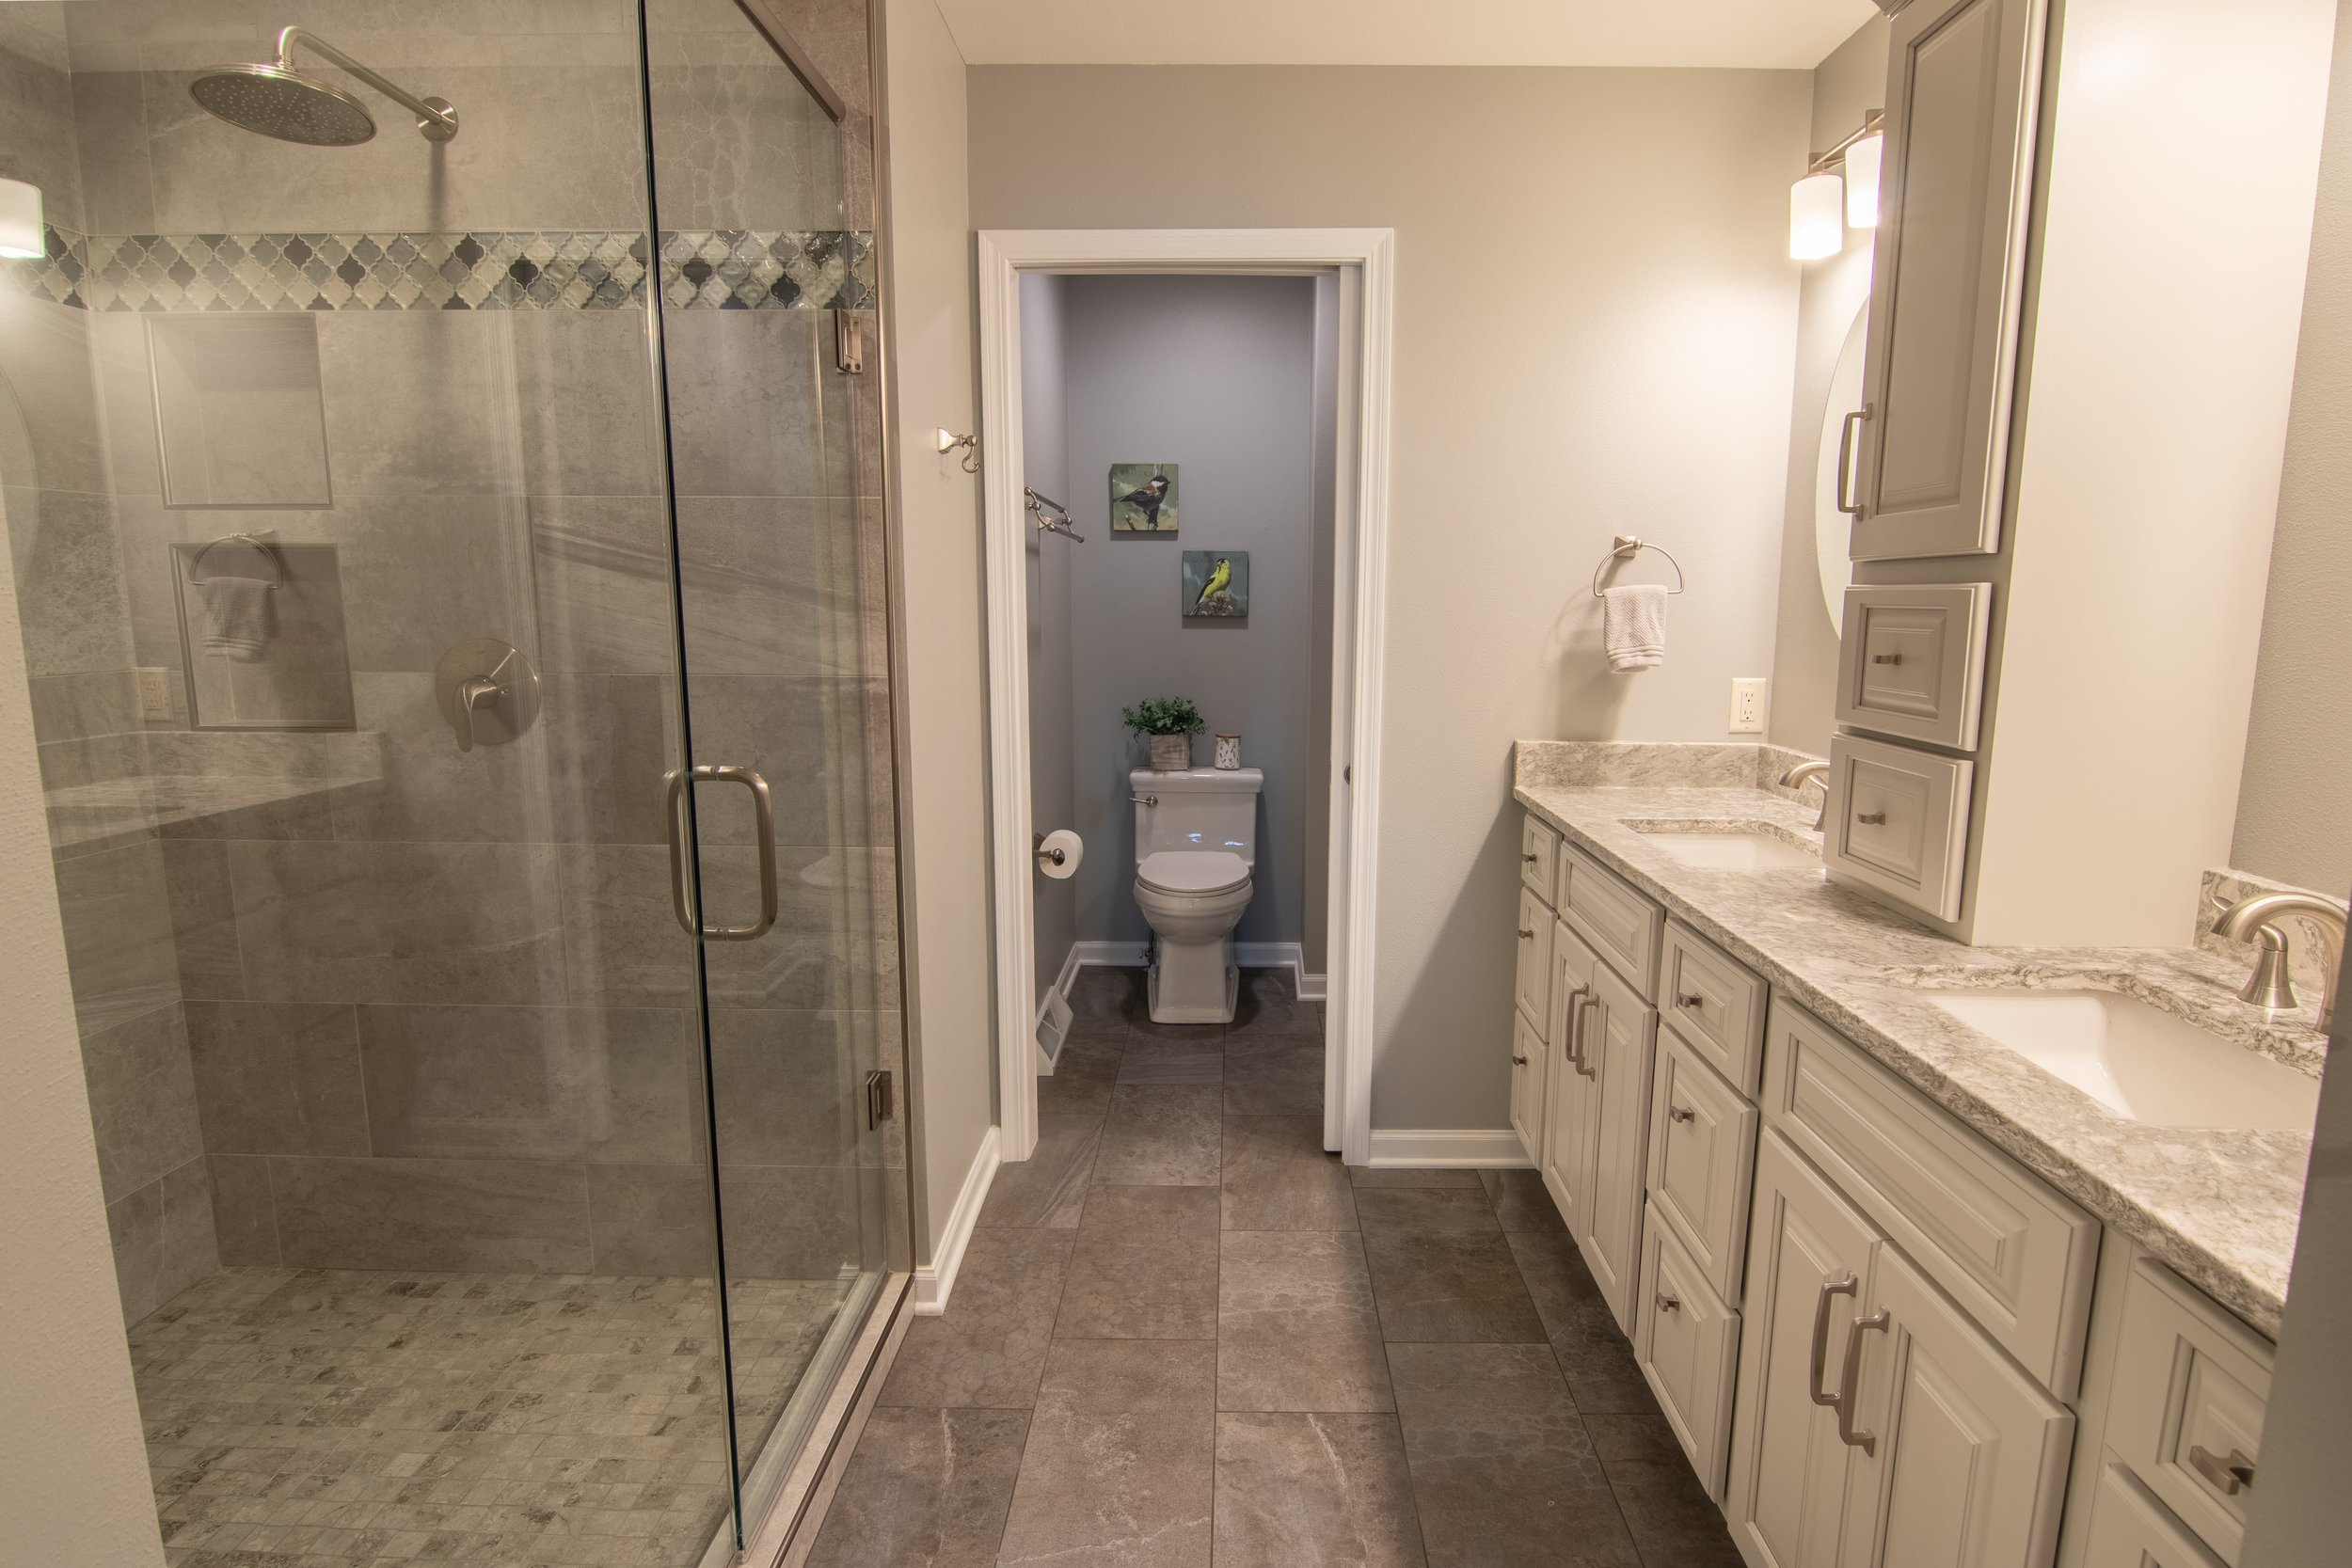 bathroom-remodel-renovate-monona-wi-1.jpg